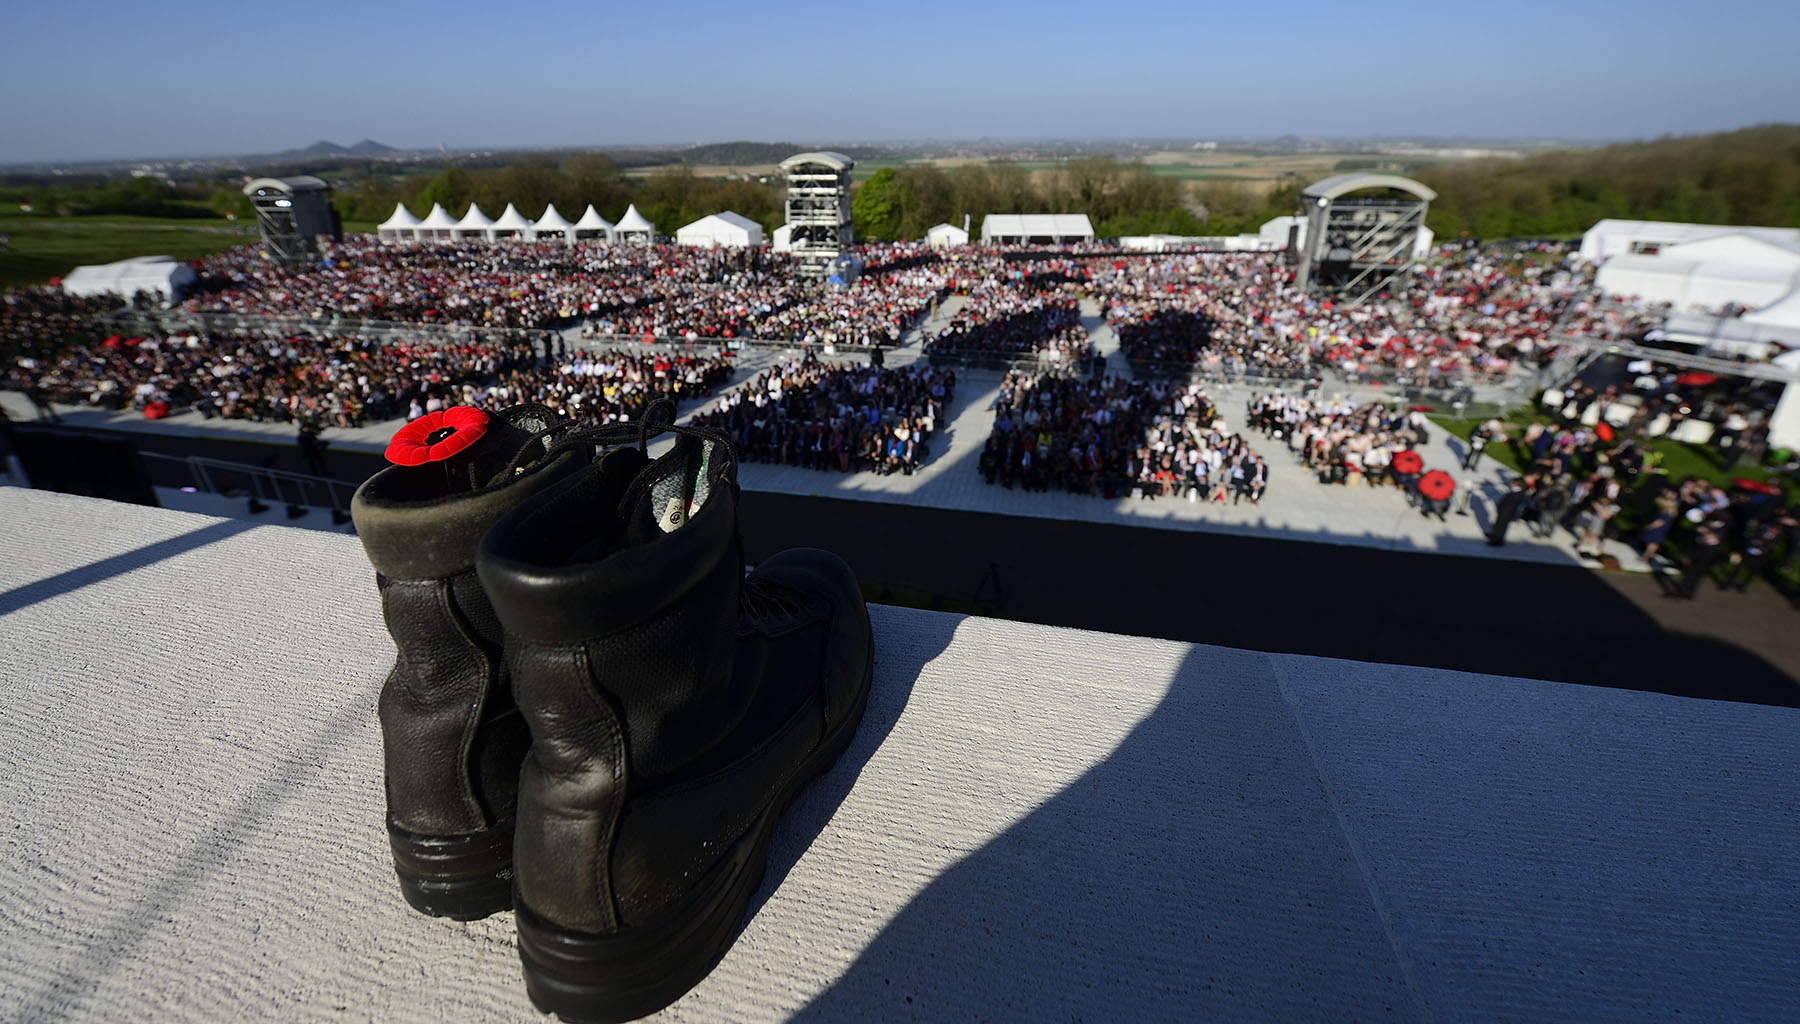 The ceremony was also built on the strong symbolism associated with the history of the battle and the Canadian values that are carved into the monument and that remain relevant today.